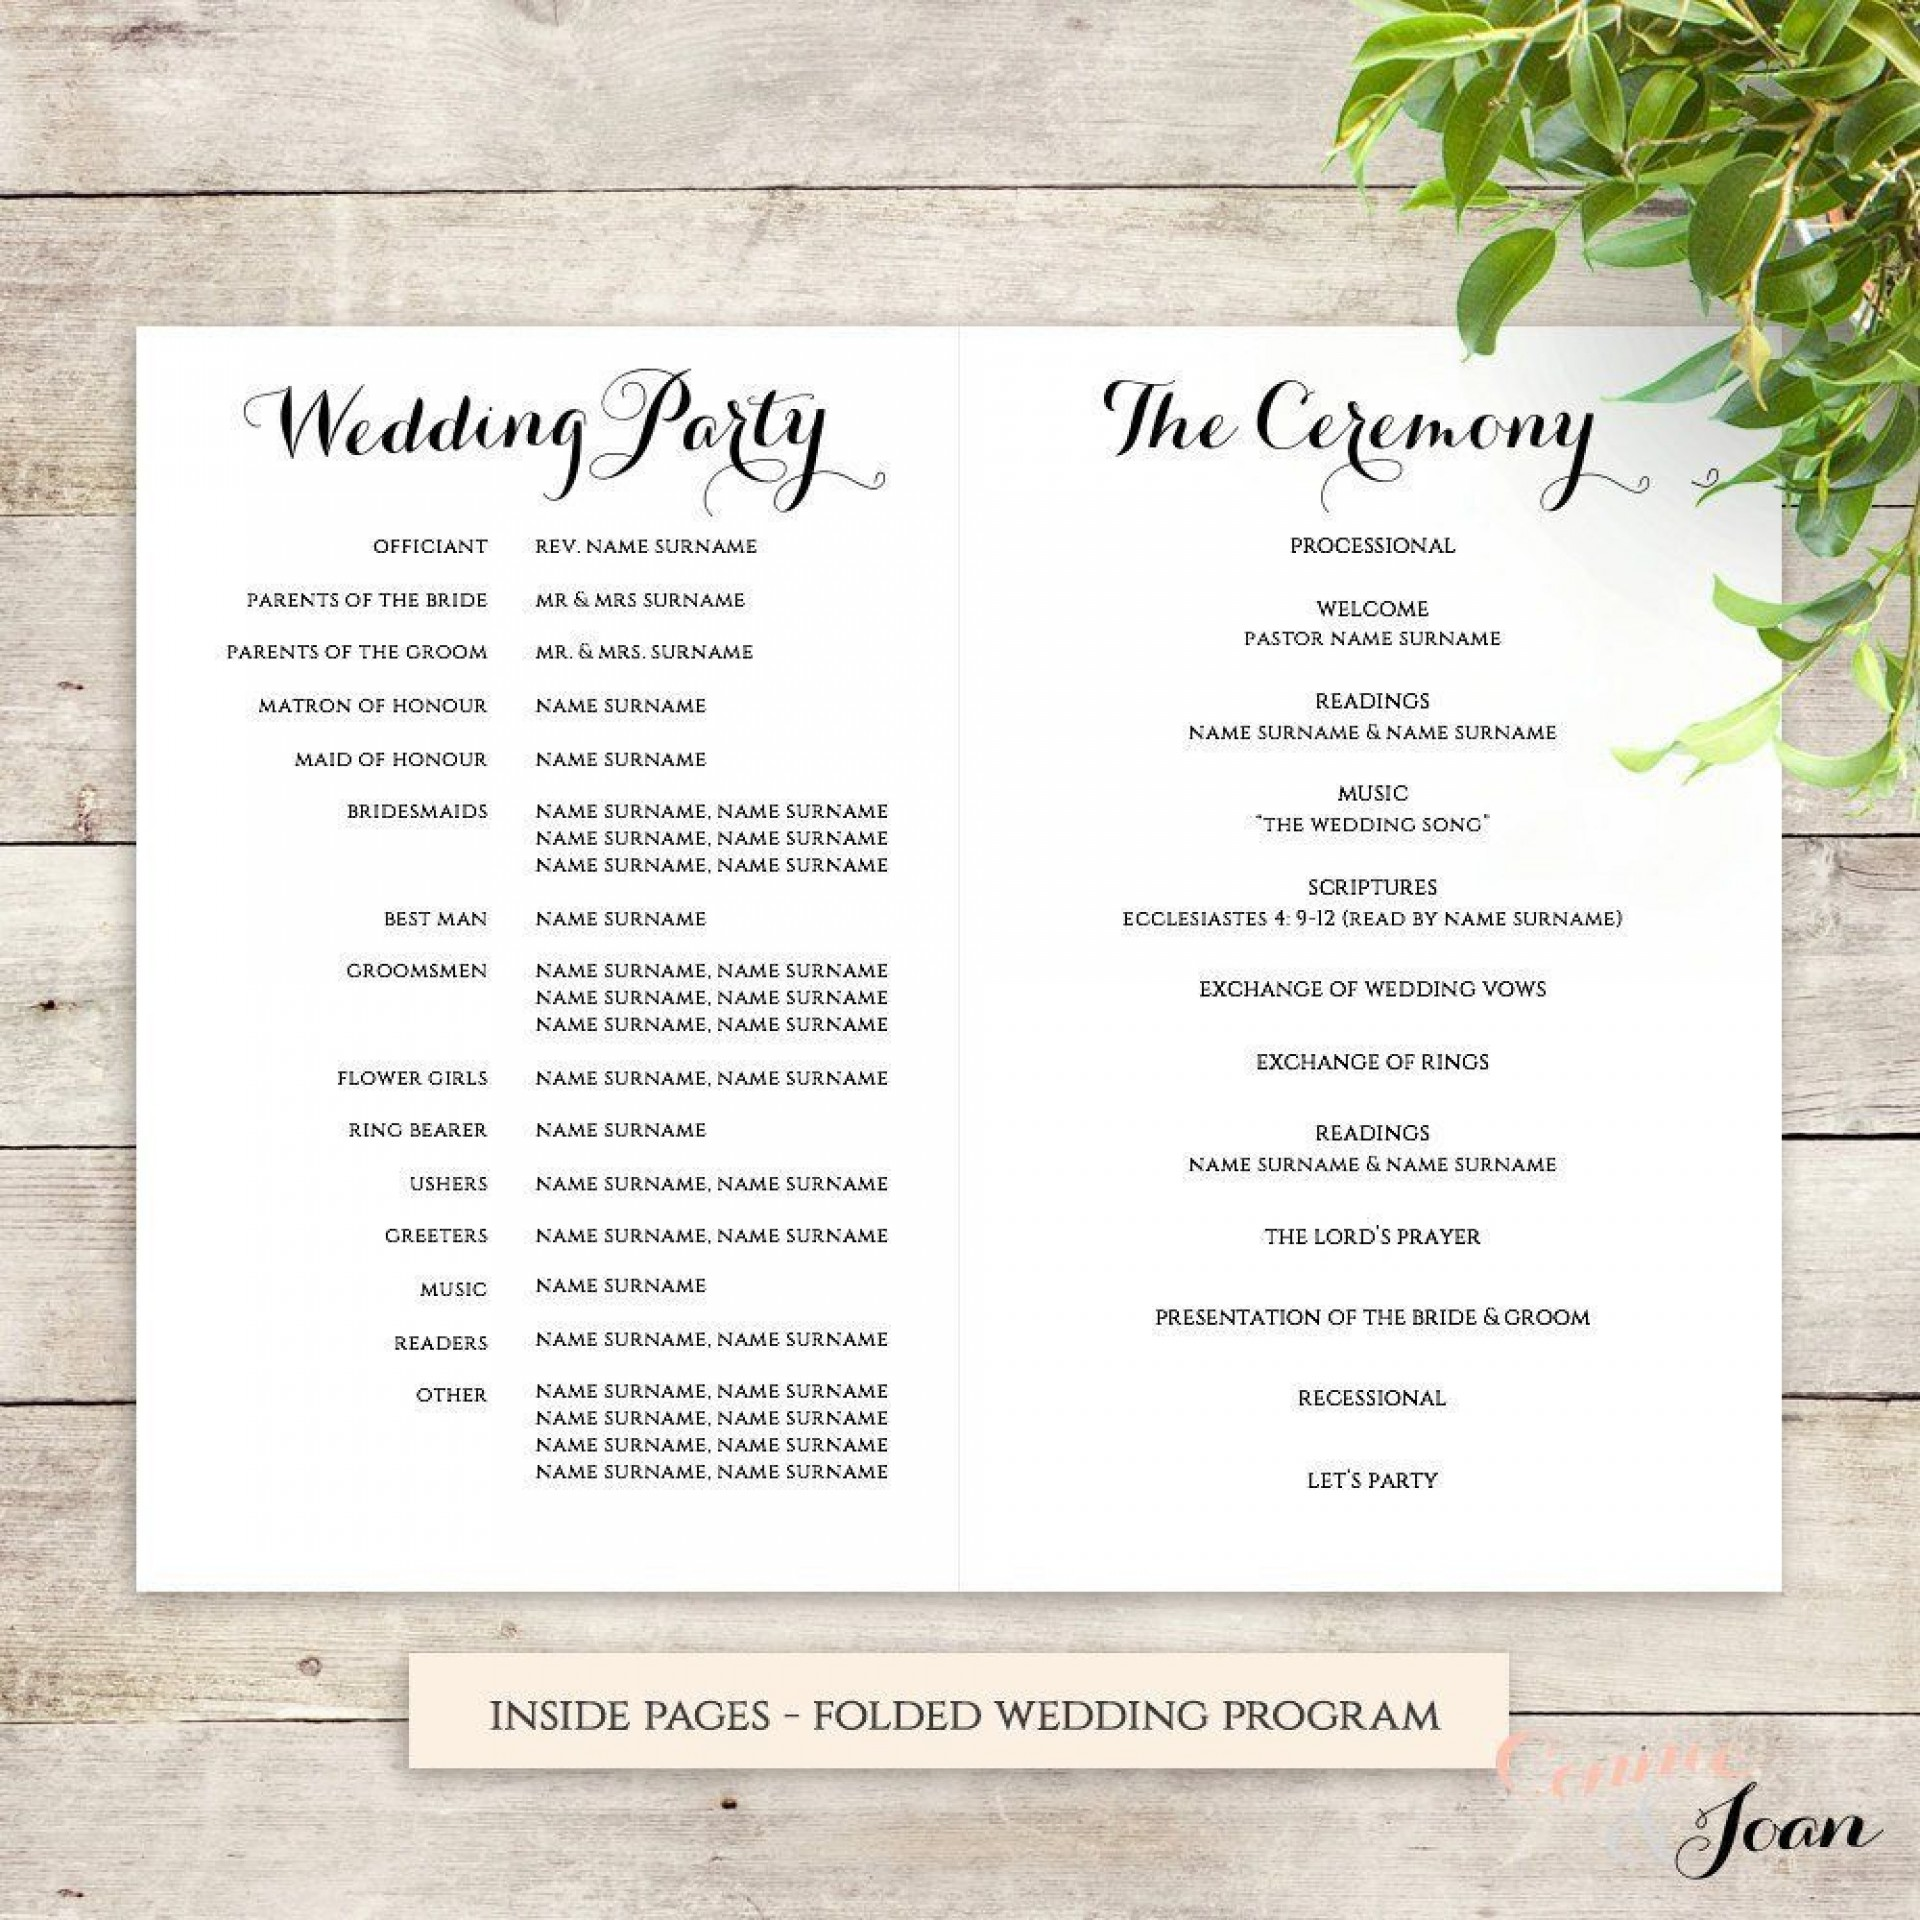 003 Archaicawful Wedding Order Of Service Template Free Download Highest Clarity  Downloadable That Can Be Printed1920